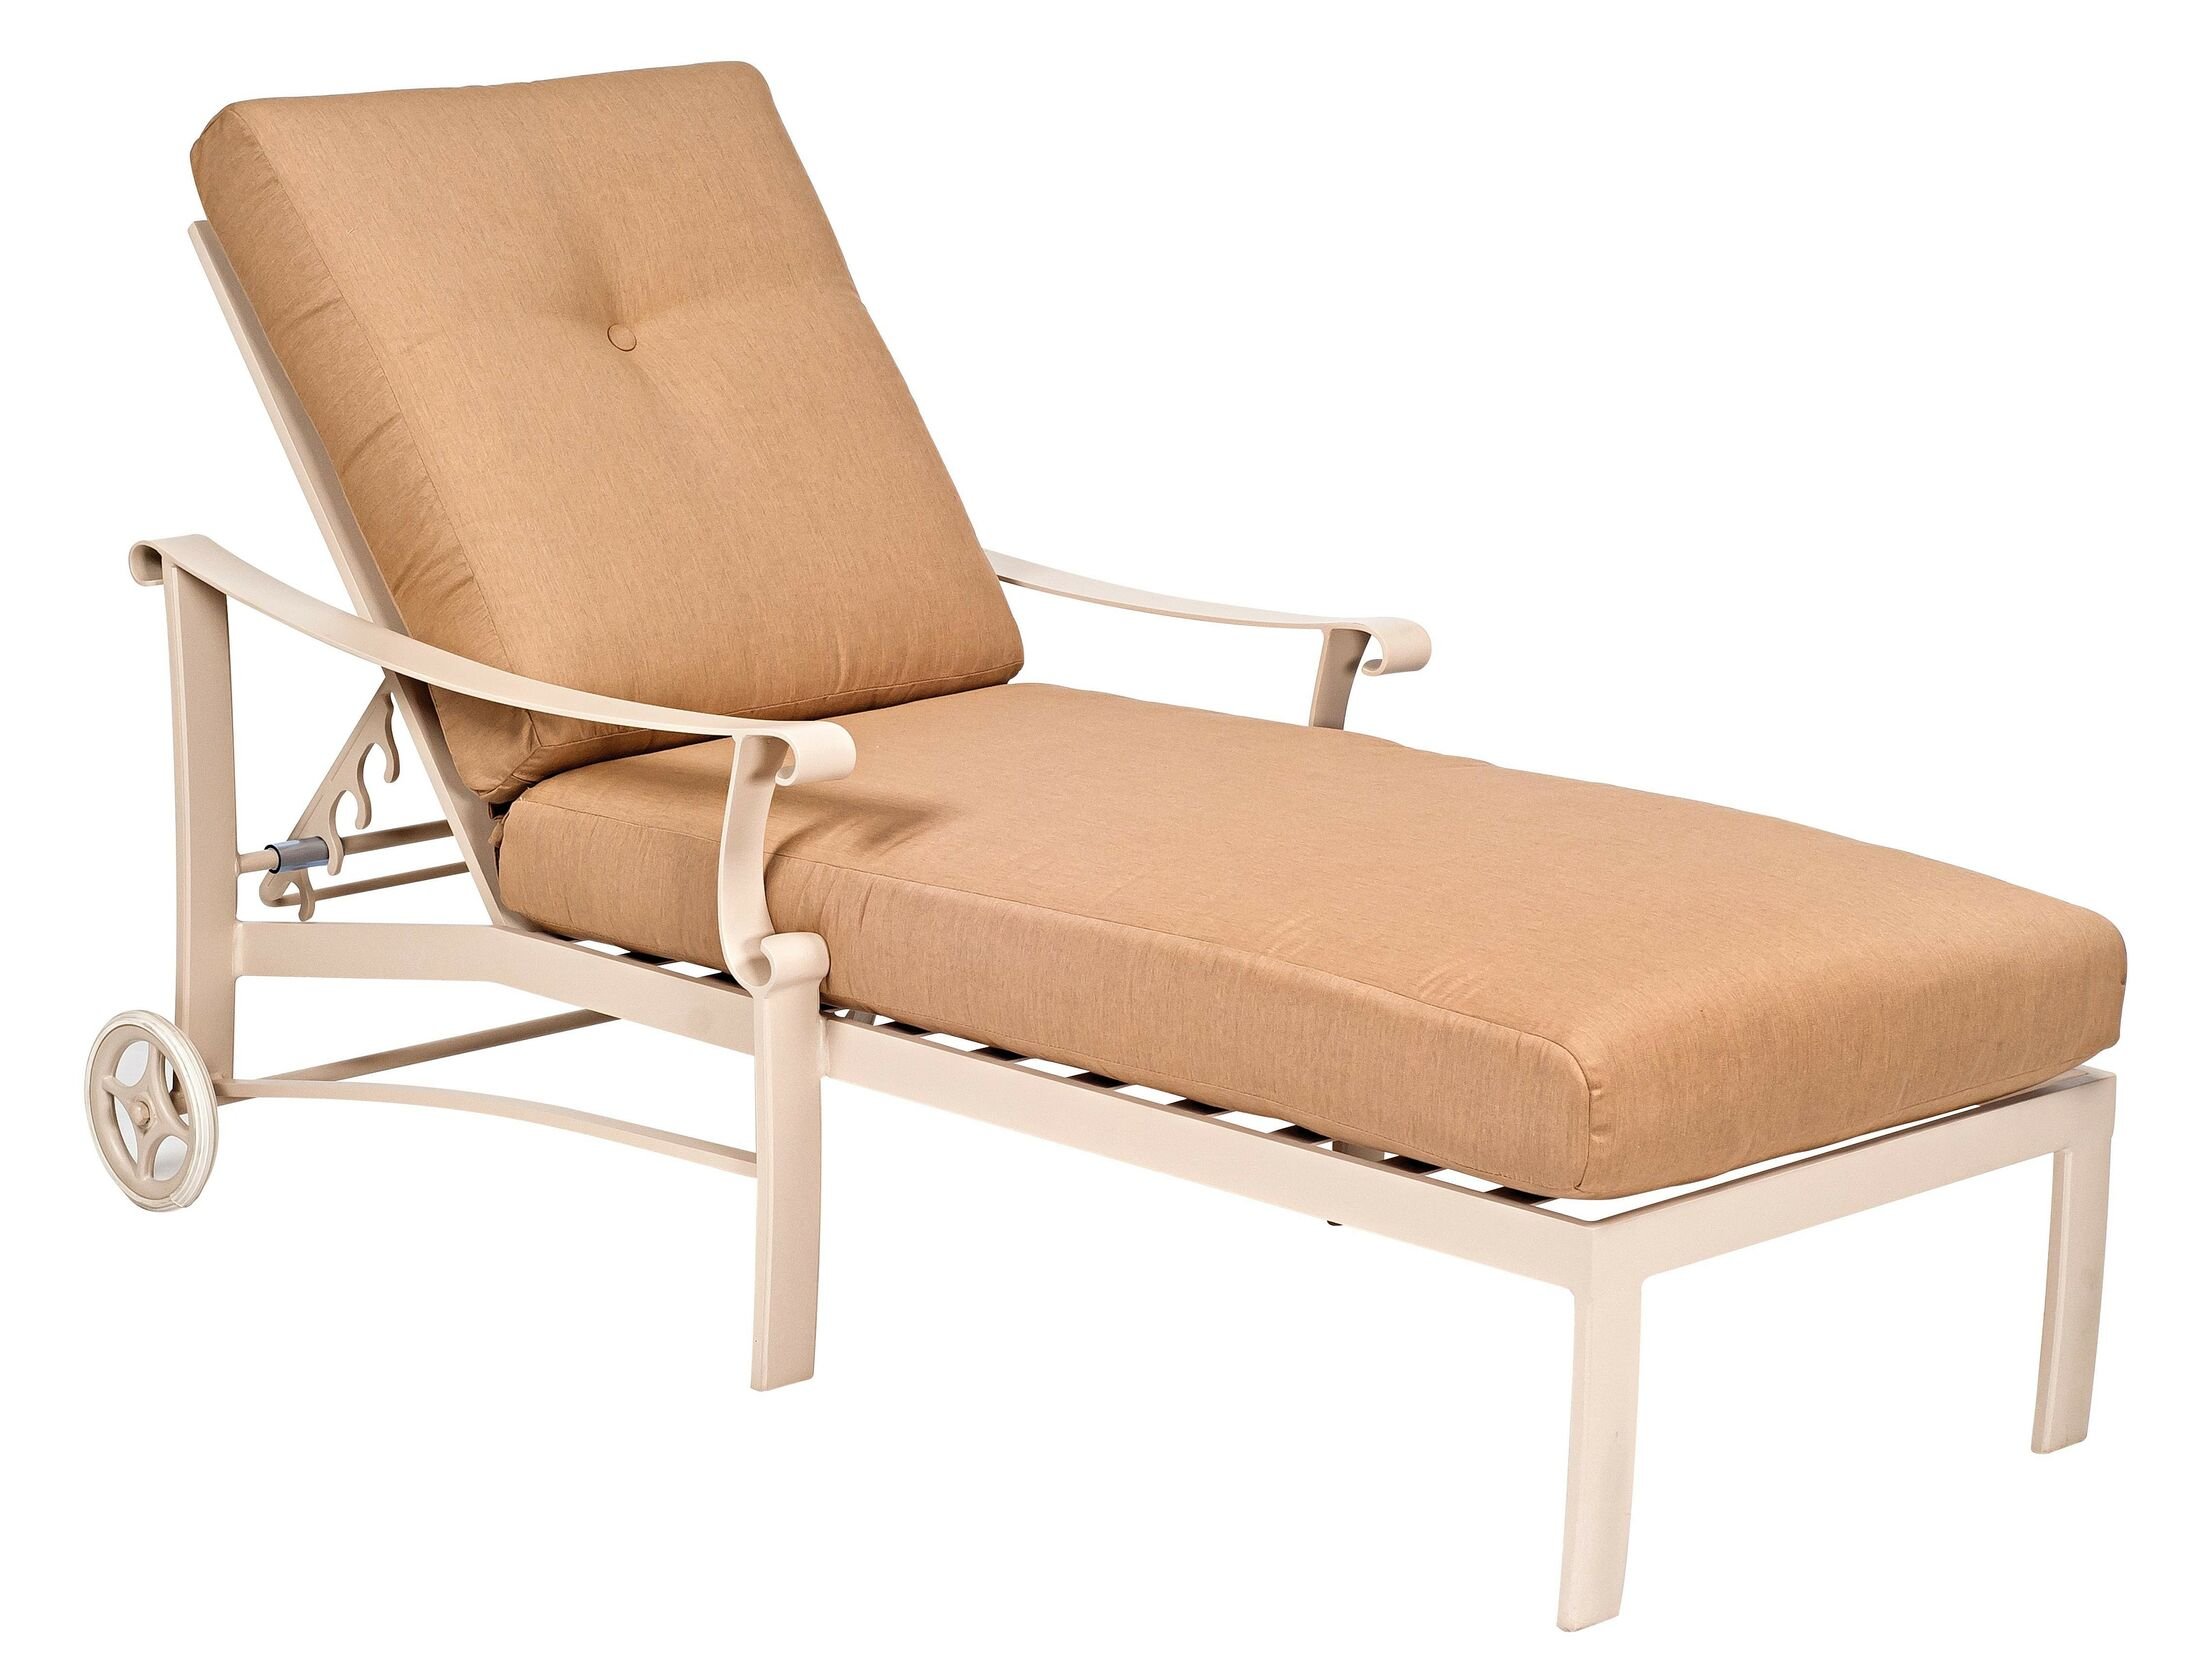 Bungalow Adjustable Chaise Lounge with Cushion